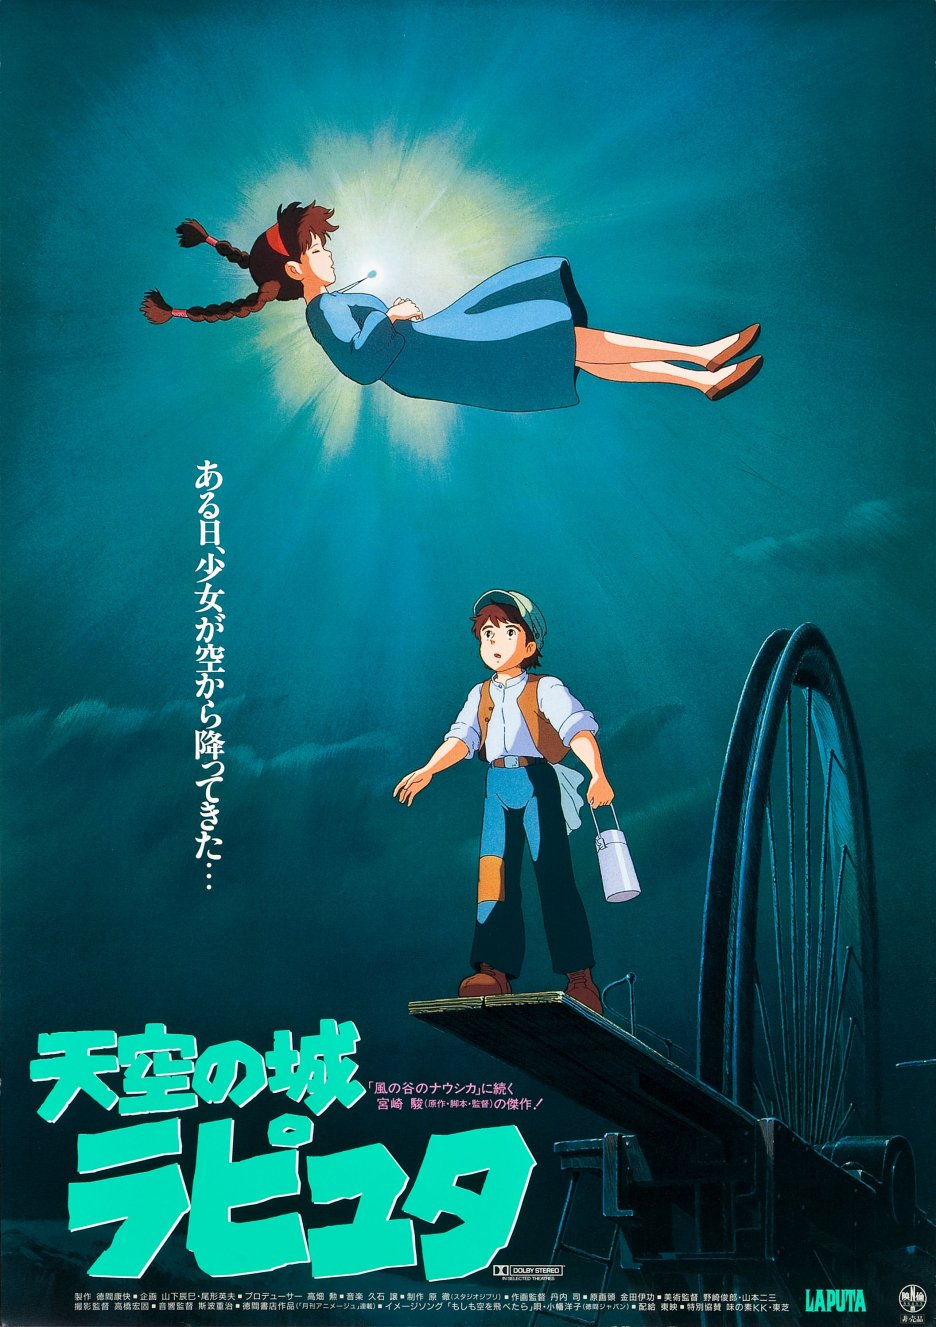 We're screening Ghibli films all week! Next up, Castle In The Sky (Mon) & Nausicaä Of The Valley Of The Wind (Tue). https://t.co/I8MlZUBfaU